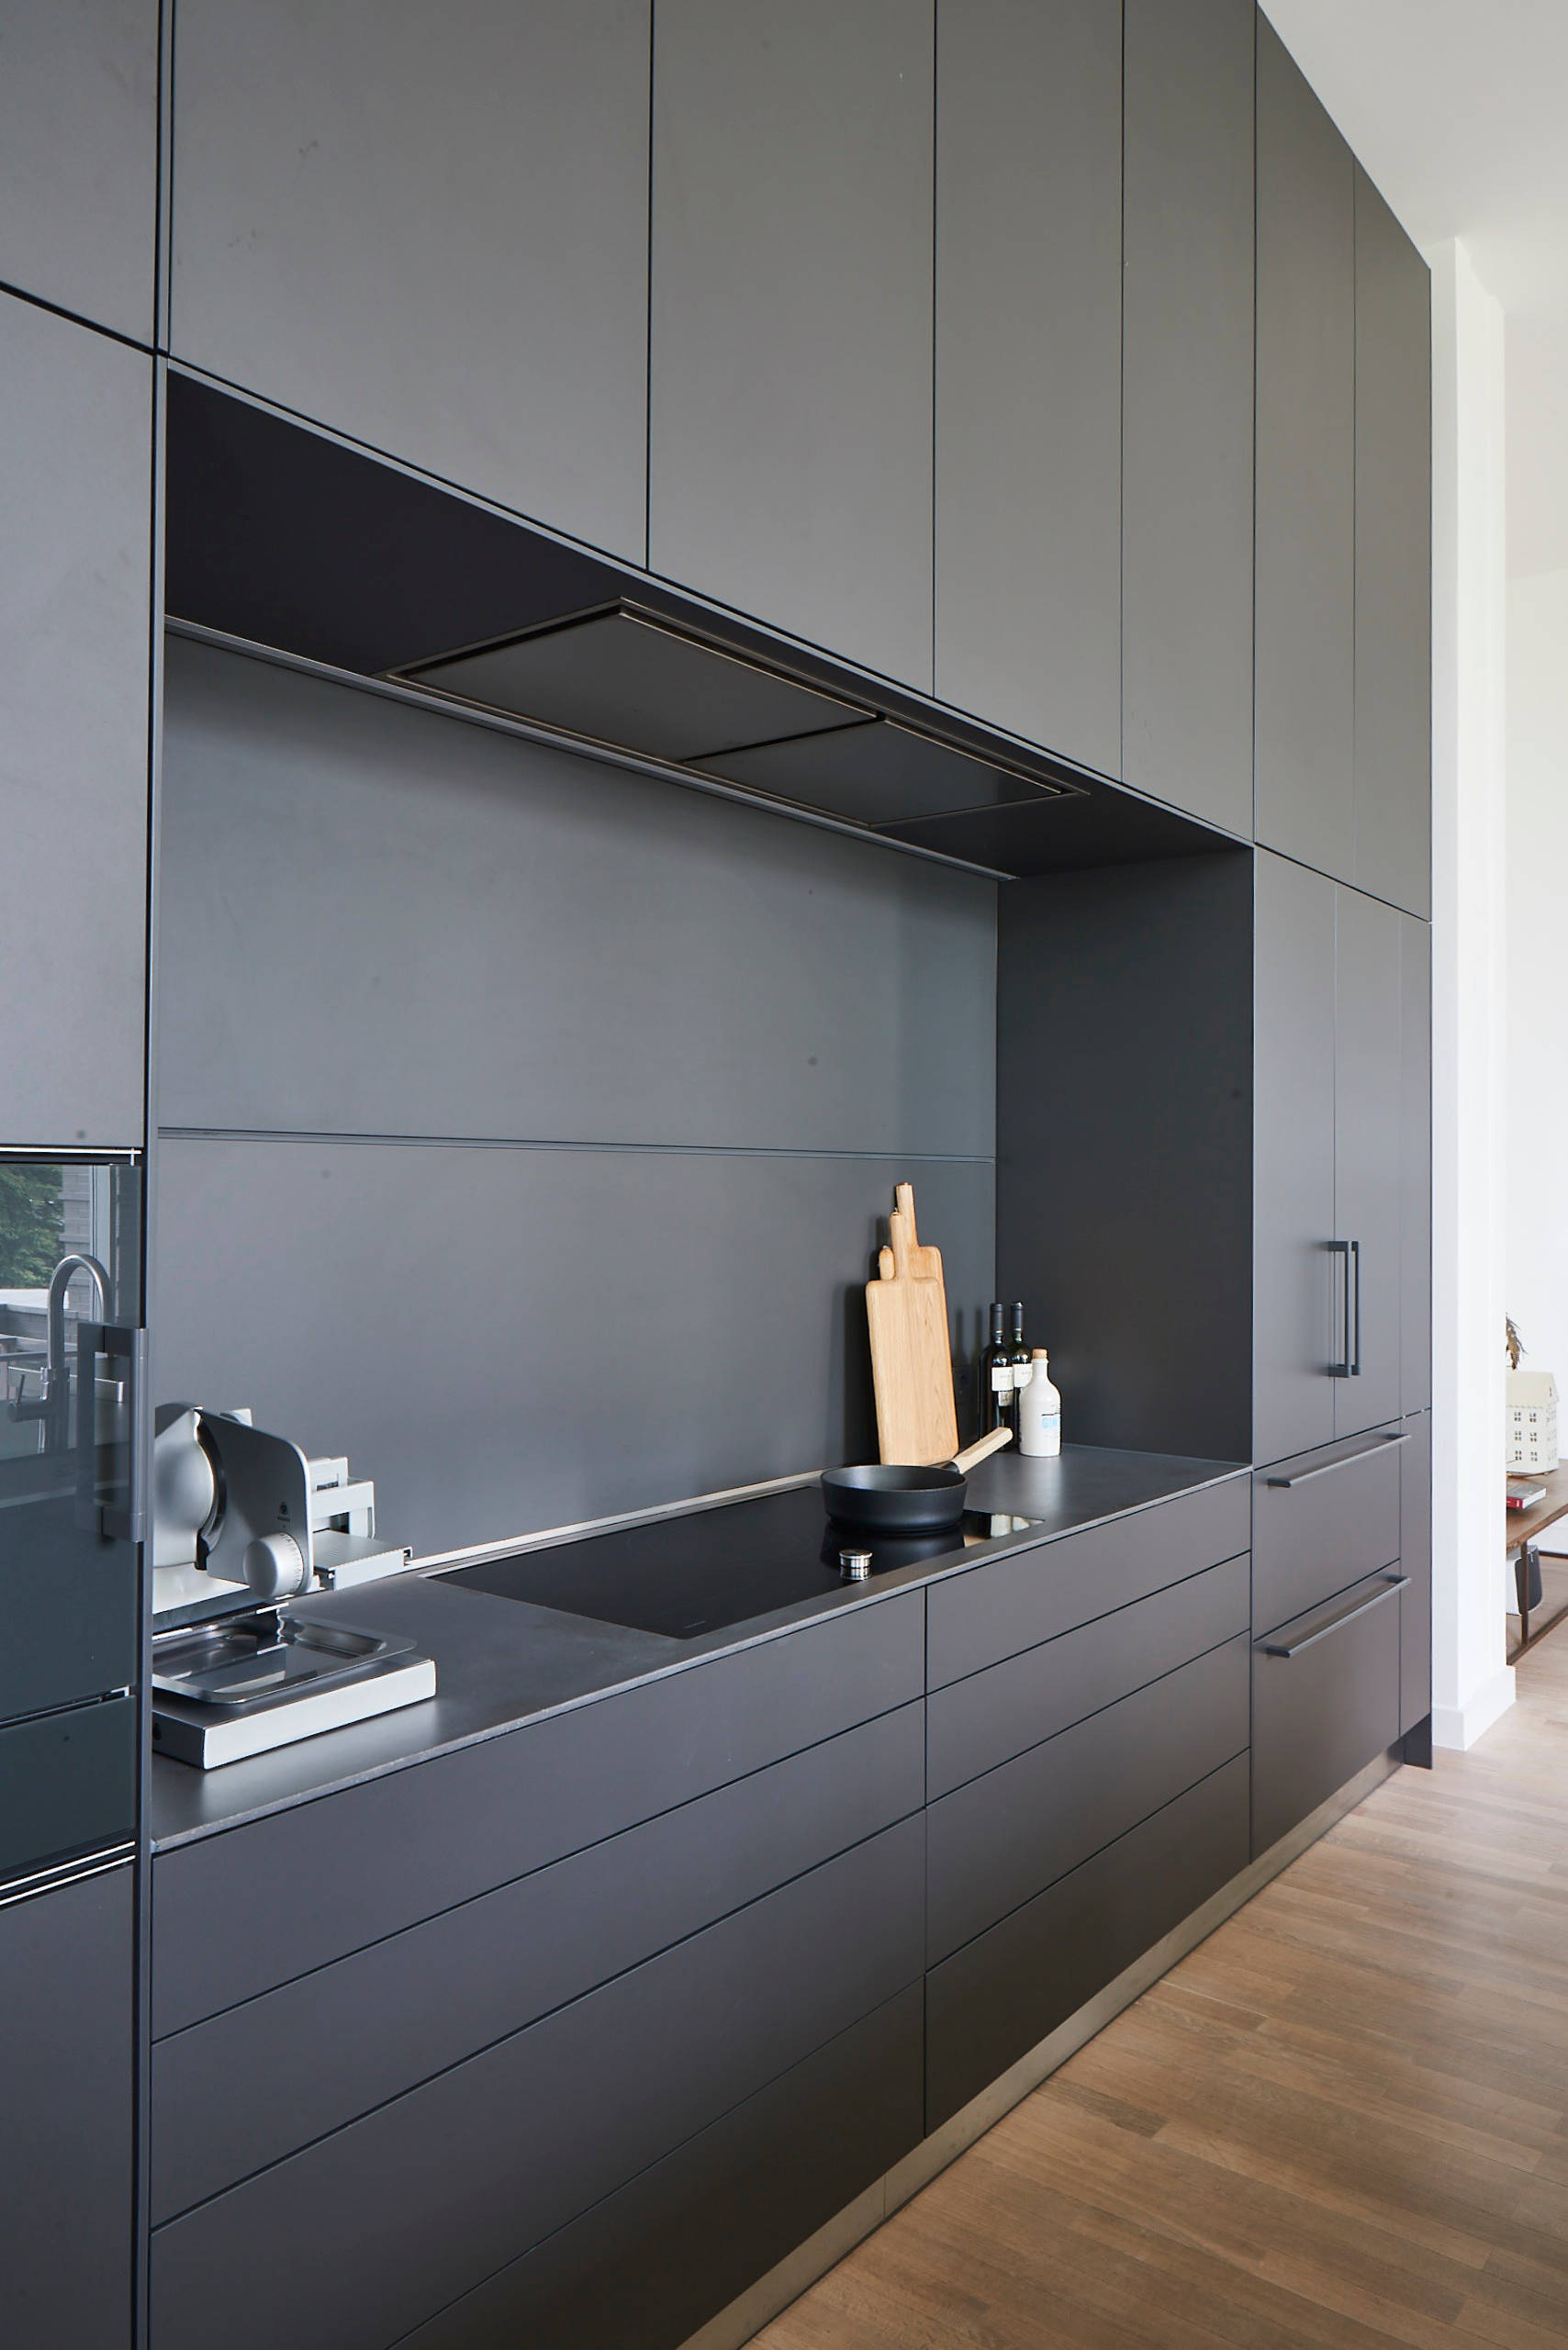 Bulthaup B3 Bulthaup B3 - Mittelweg - Contemporary - Kitchen - Hamburg - By Küchen-atelier-hamburg, Bulthaup In Winterhude | Houzz